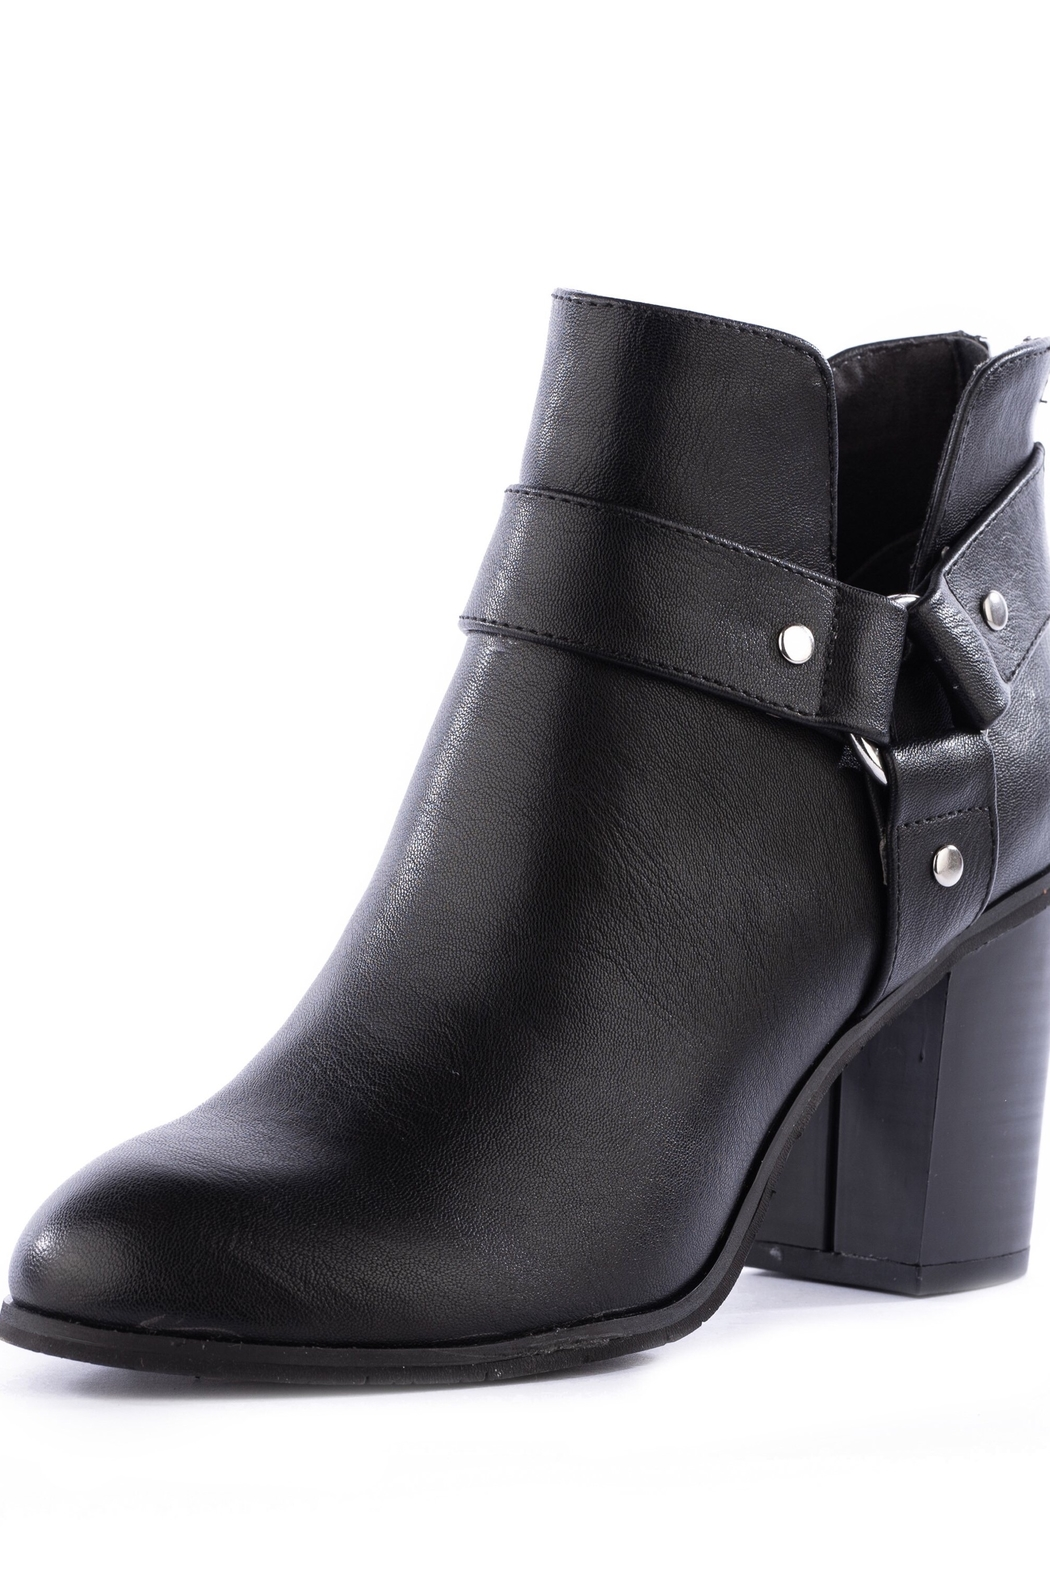 BC Footwear Miss Independent Bootie - Main Image